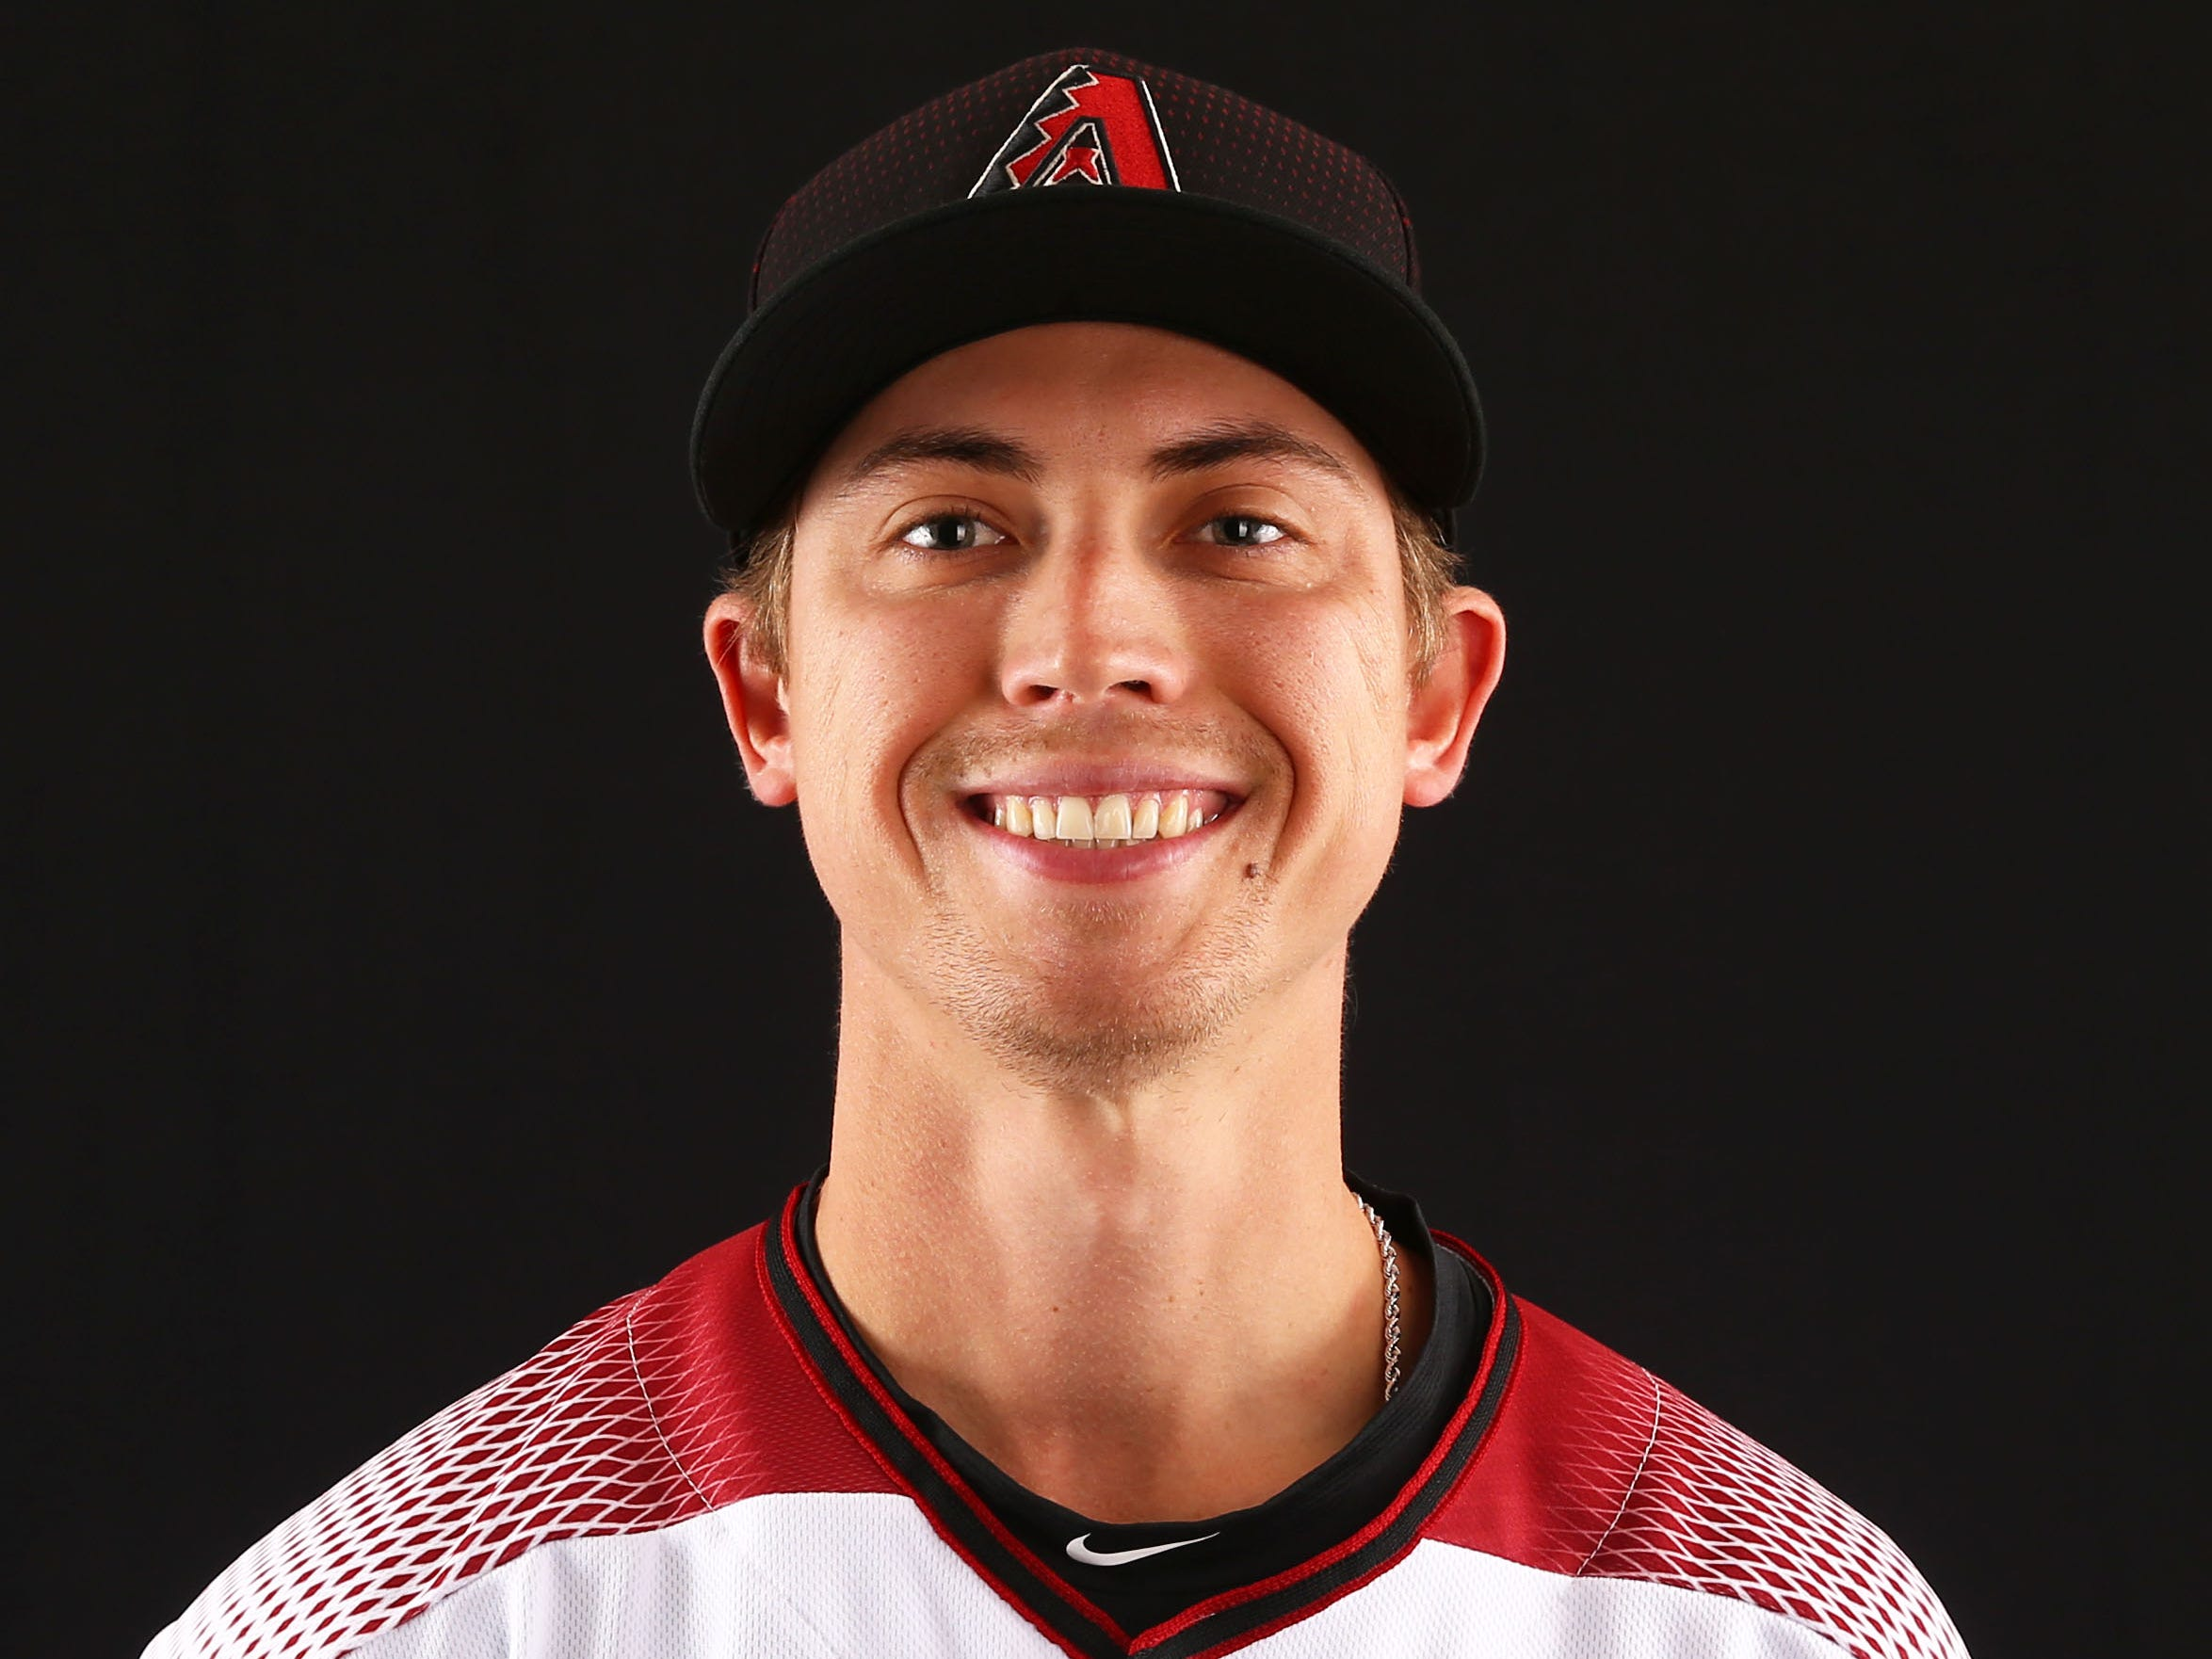 Luke Weaver of the Arizona Diamondbacks poses for a photo during the annual Spring Training Photo Day on Feb. 20 at Salt River Fields in Scottsdale, Ariz.